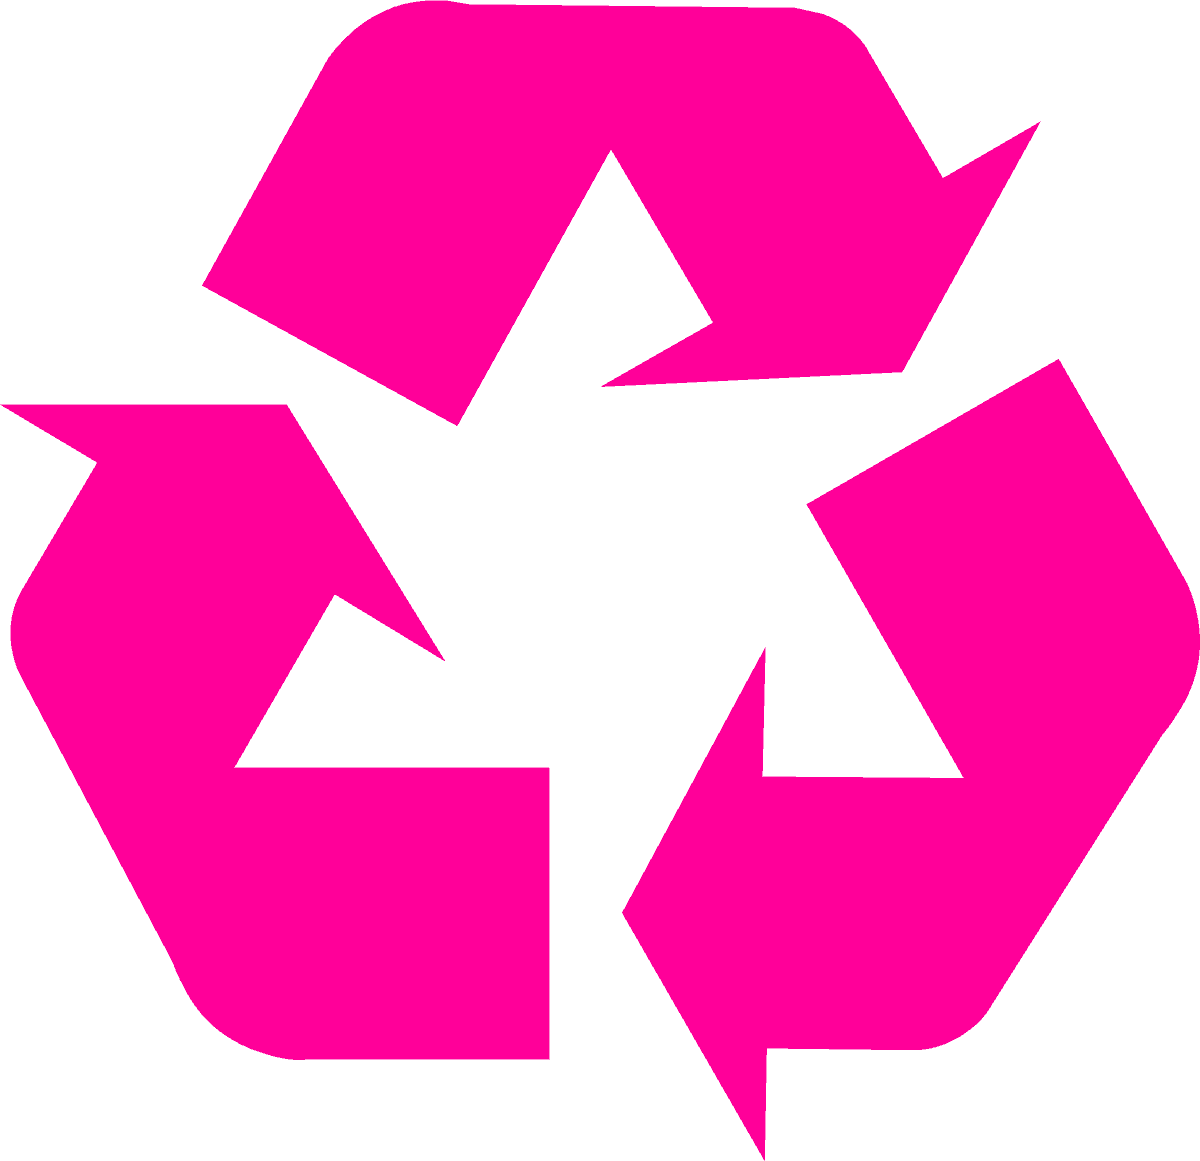 image about Printable Recycle Symbol identified as Recycling Brand - Obtain the Primary Recycle Emblem